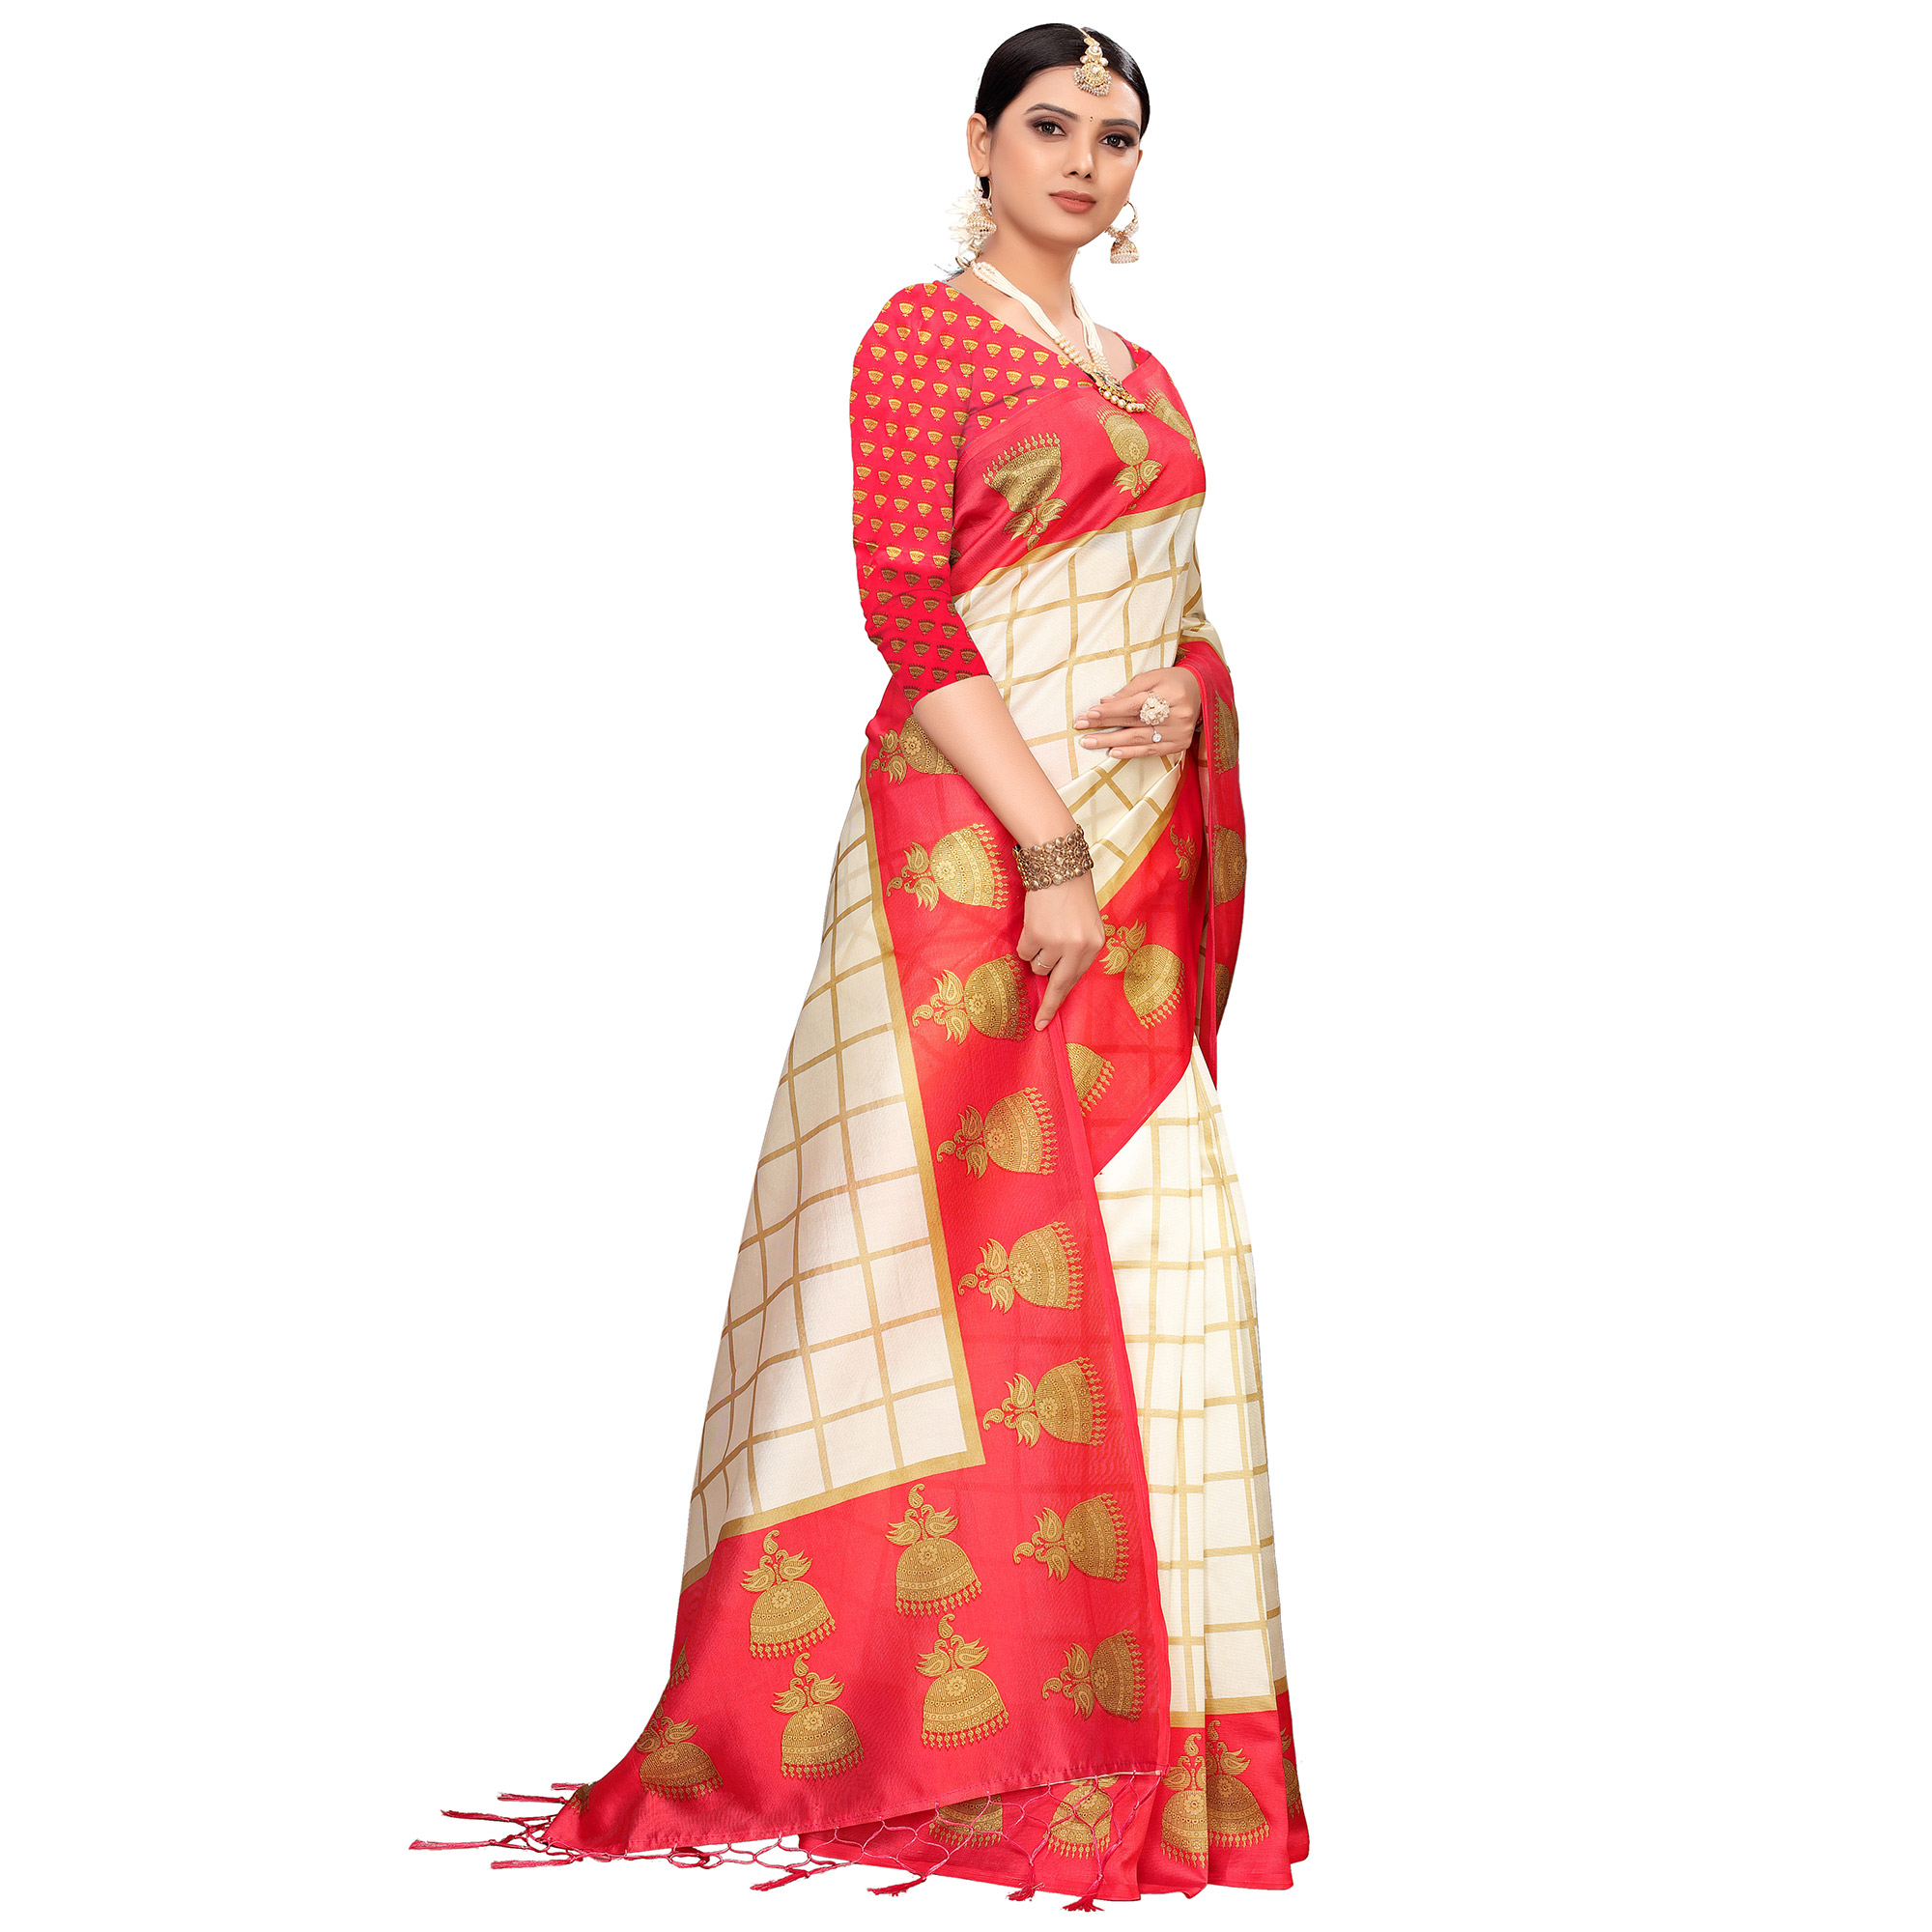 Charming Off White-Red Colored Festive Wear Printed Mysore Silk Saree